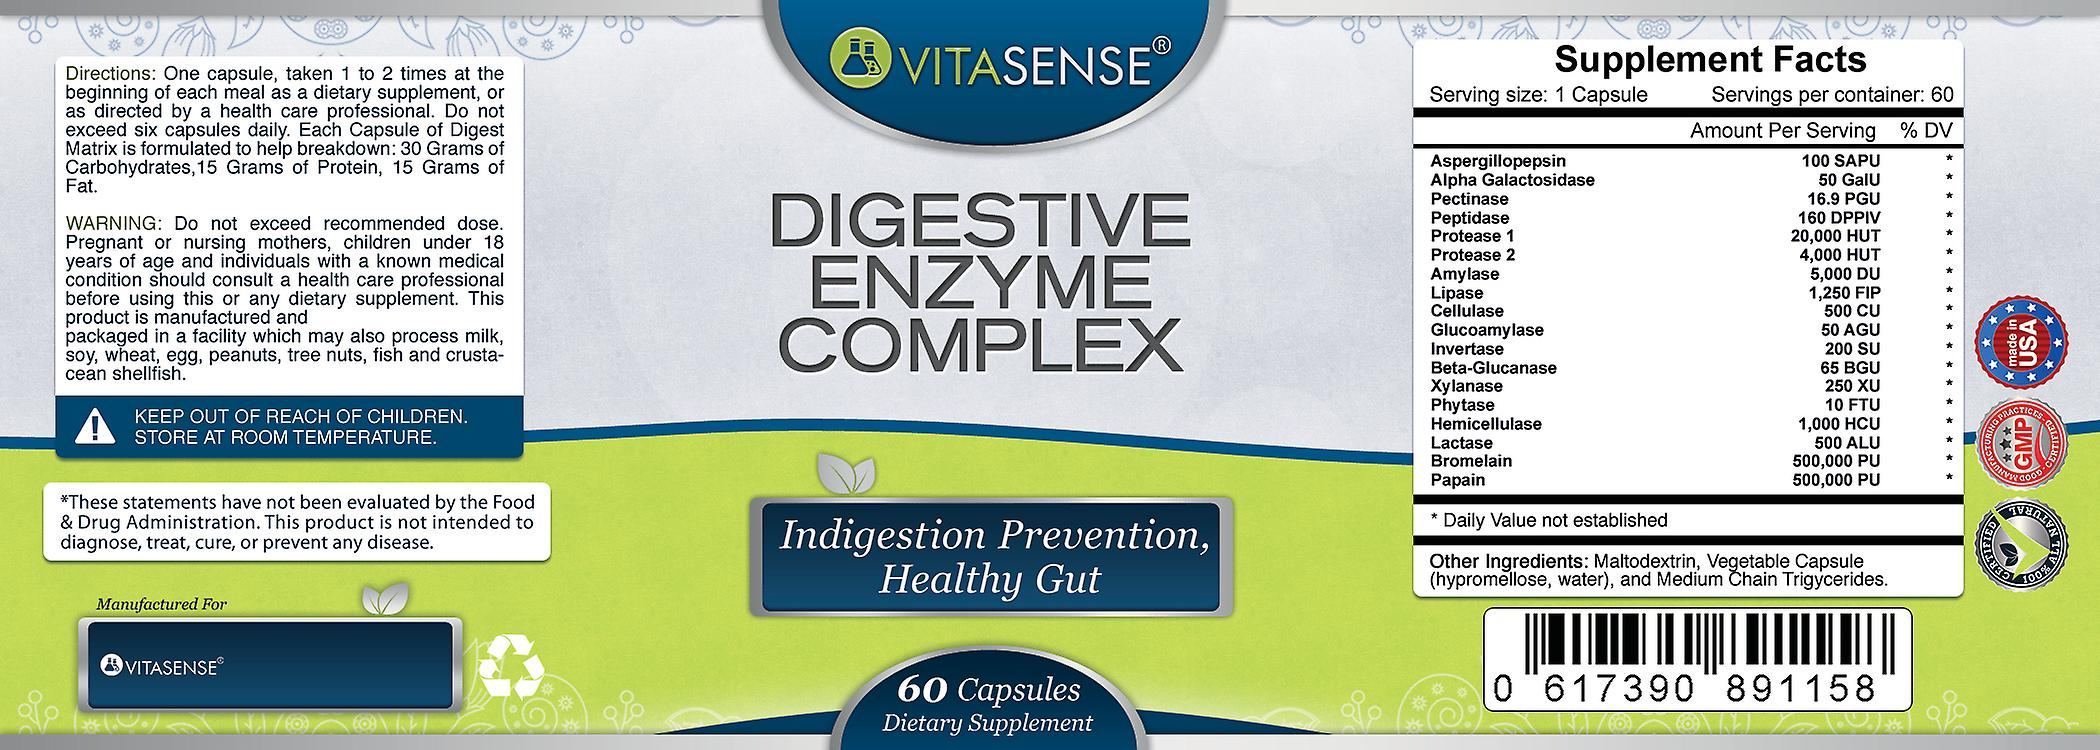 VitaSense Digestive Enzyme Complex - Indigestion Prevention Healthy Gut - 60 Capsules